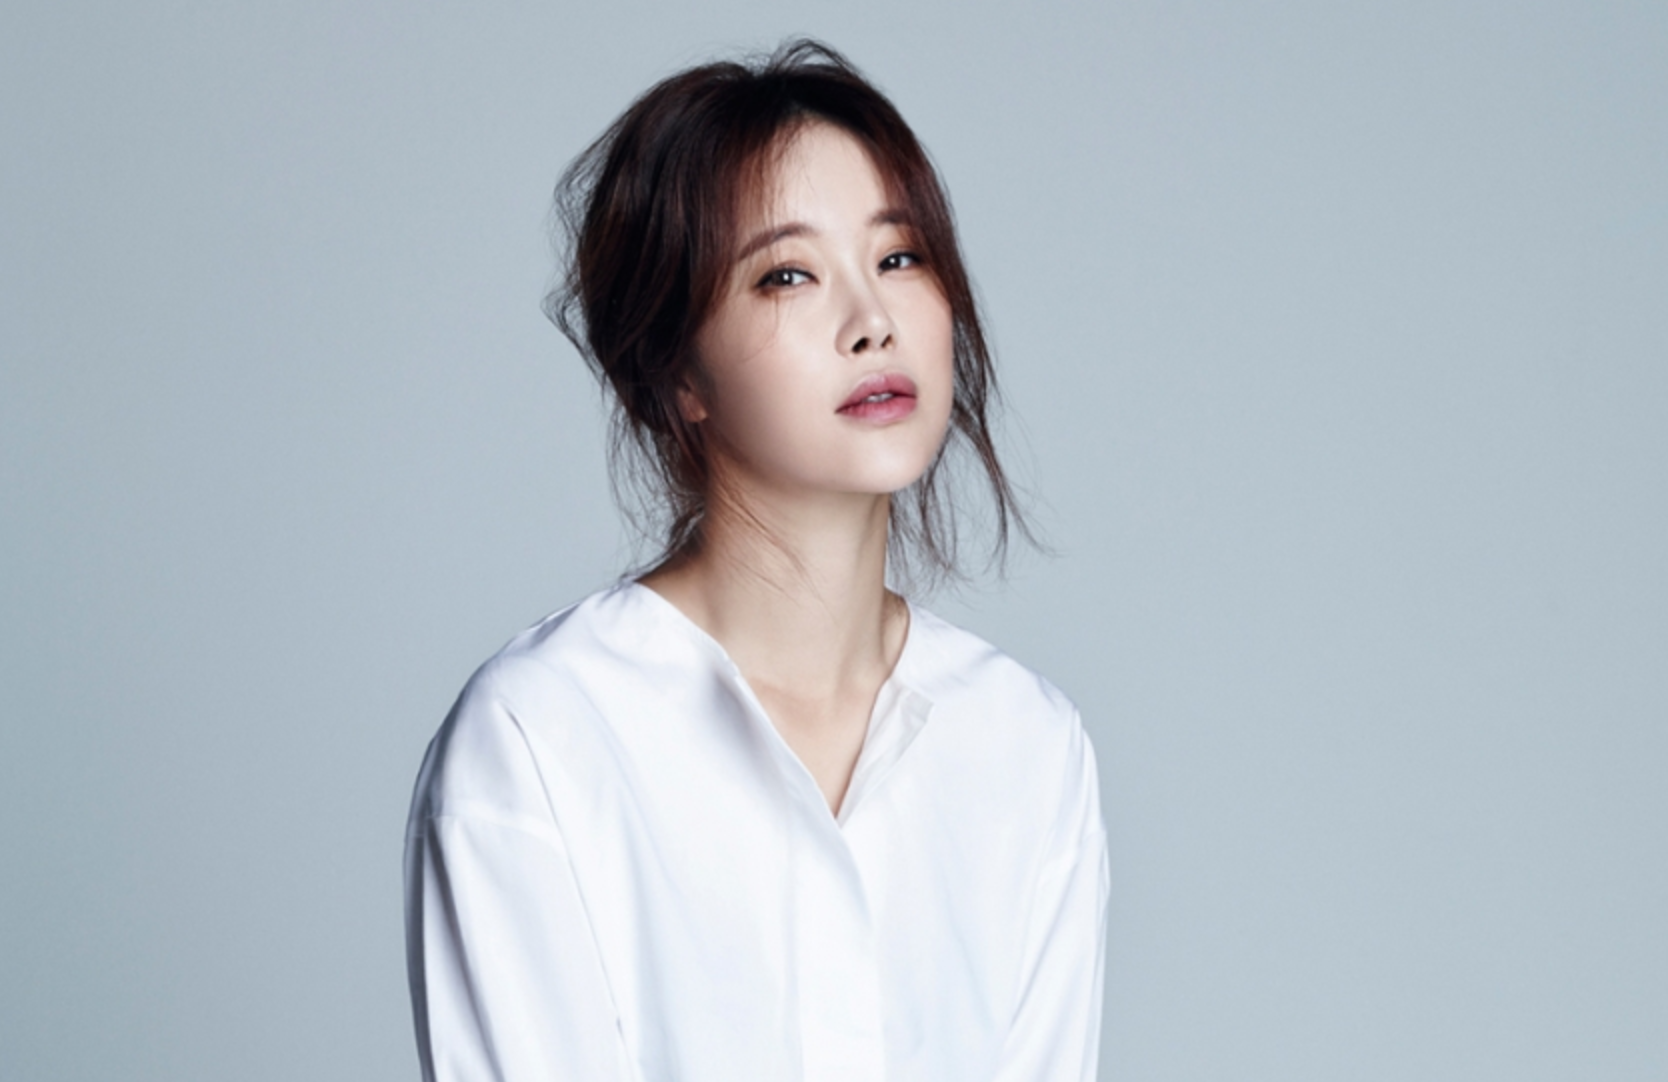 Baek Ji Young escoge los 2016 MBC Entertainment Awards como primer evento tras la noticia de su embarazo